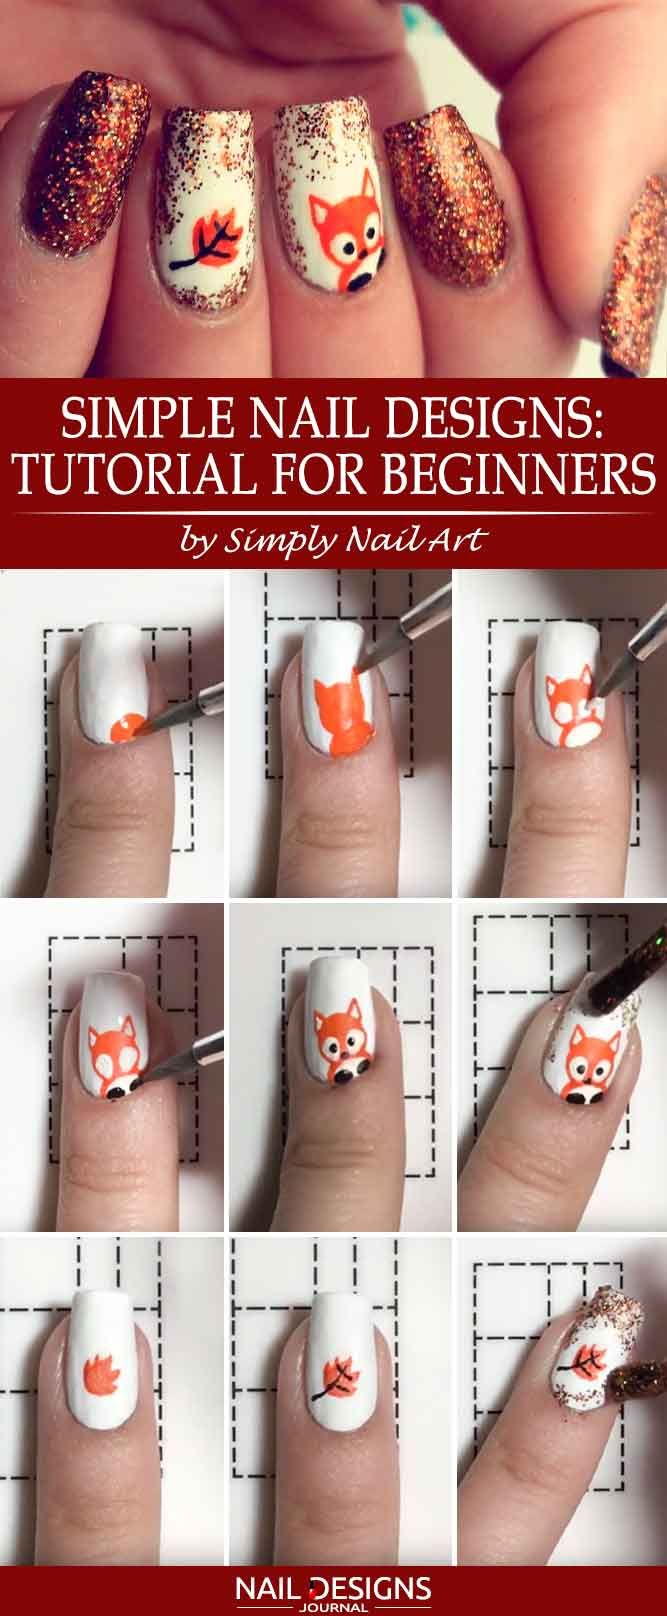 Foxy Nails: The Hottest Trend of This Fall | Art nails, Tutorials ...